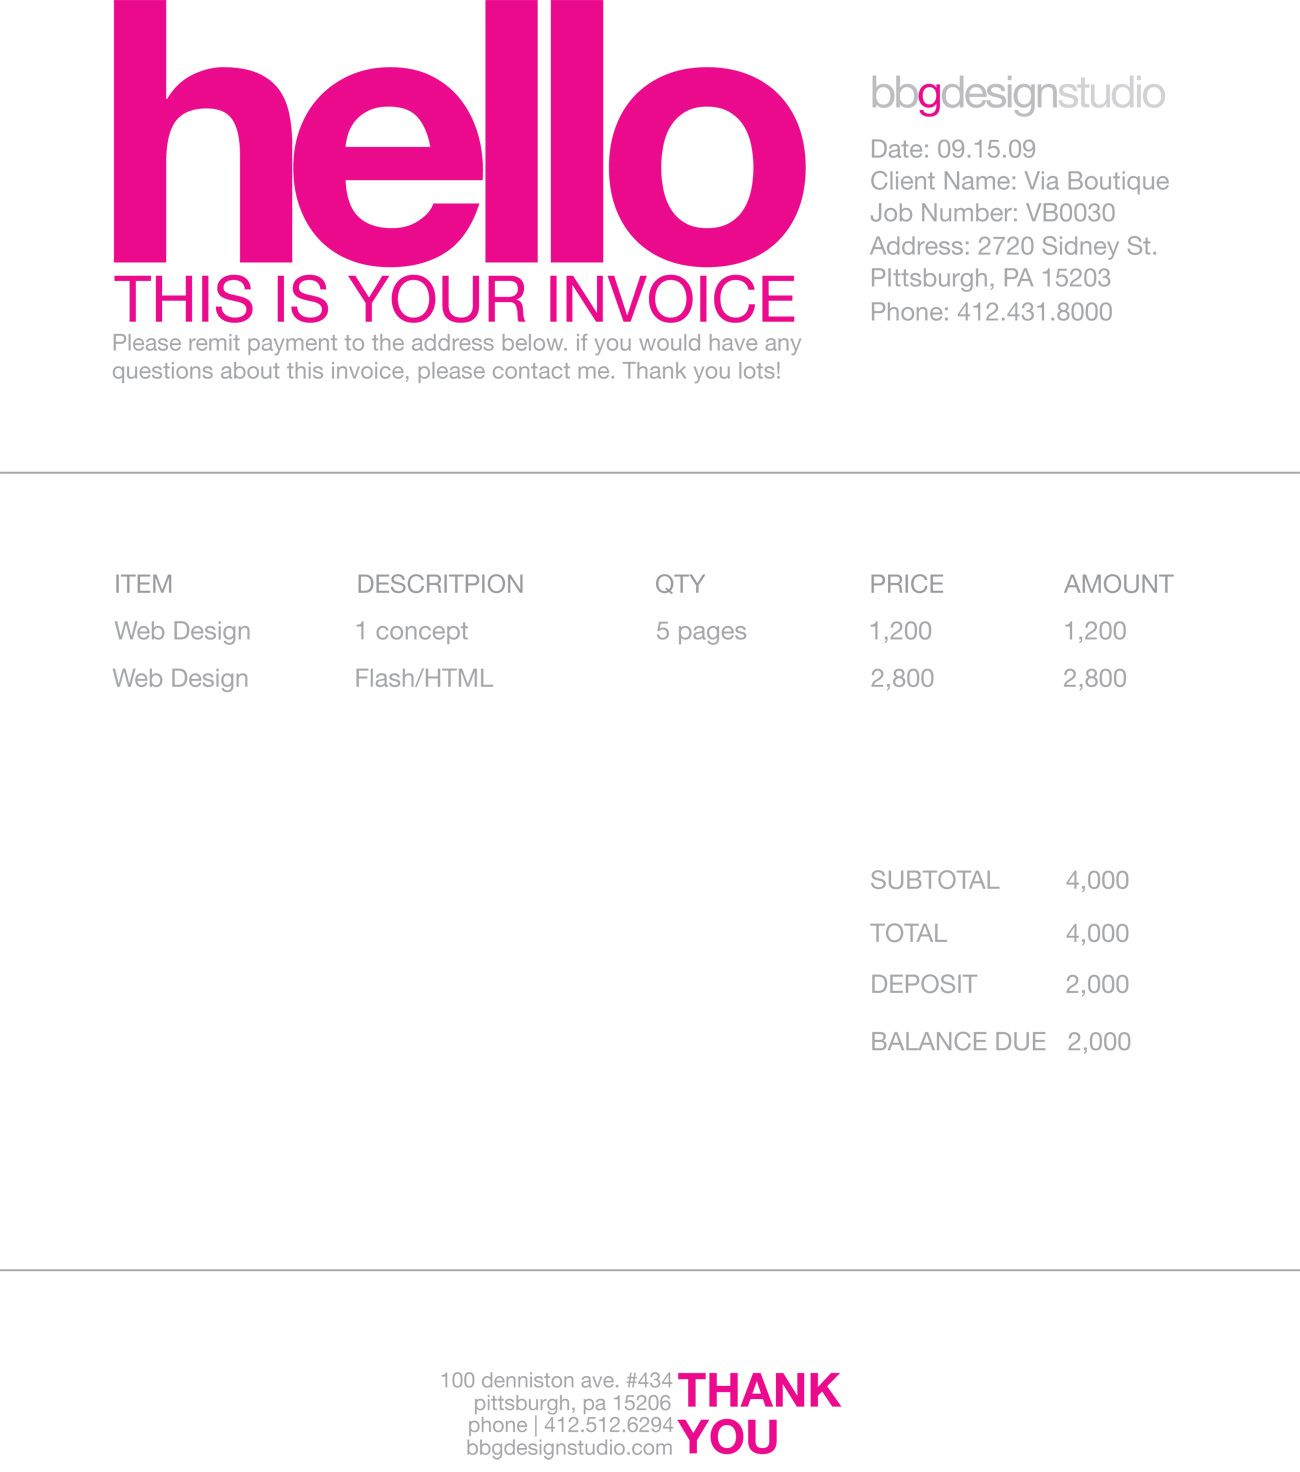 Reliefworkersus  Remarkable  Images About Invoice Design On Pinterest With Hot Paypal Invoice Payment Besides Print Blank Invoice Furthermore  Honda Accord Invoice With Delectable Quickbooks Invoice Import Also Invoice In Paypal In Addition Free Invoice Generator Download And Free Invoice System As Well As Invoice Signature Additionally Access Invoice Database From Pinterestcom With Reliefworkersus  Hot  Images About Invoice Design On Pinterest With Delectable Paypal Invoice Payment Besides Print Blank Invoice Furthermore  Honda Accord Invoice And Remarkable Quickbooks Invoice Import Also Invoice In Paypal In Addition Free Invoice Generator Download From Pinterestcom